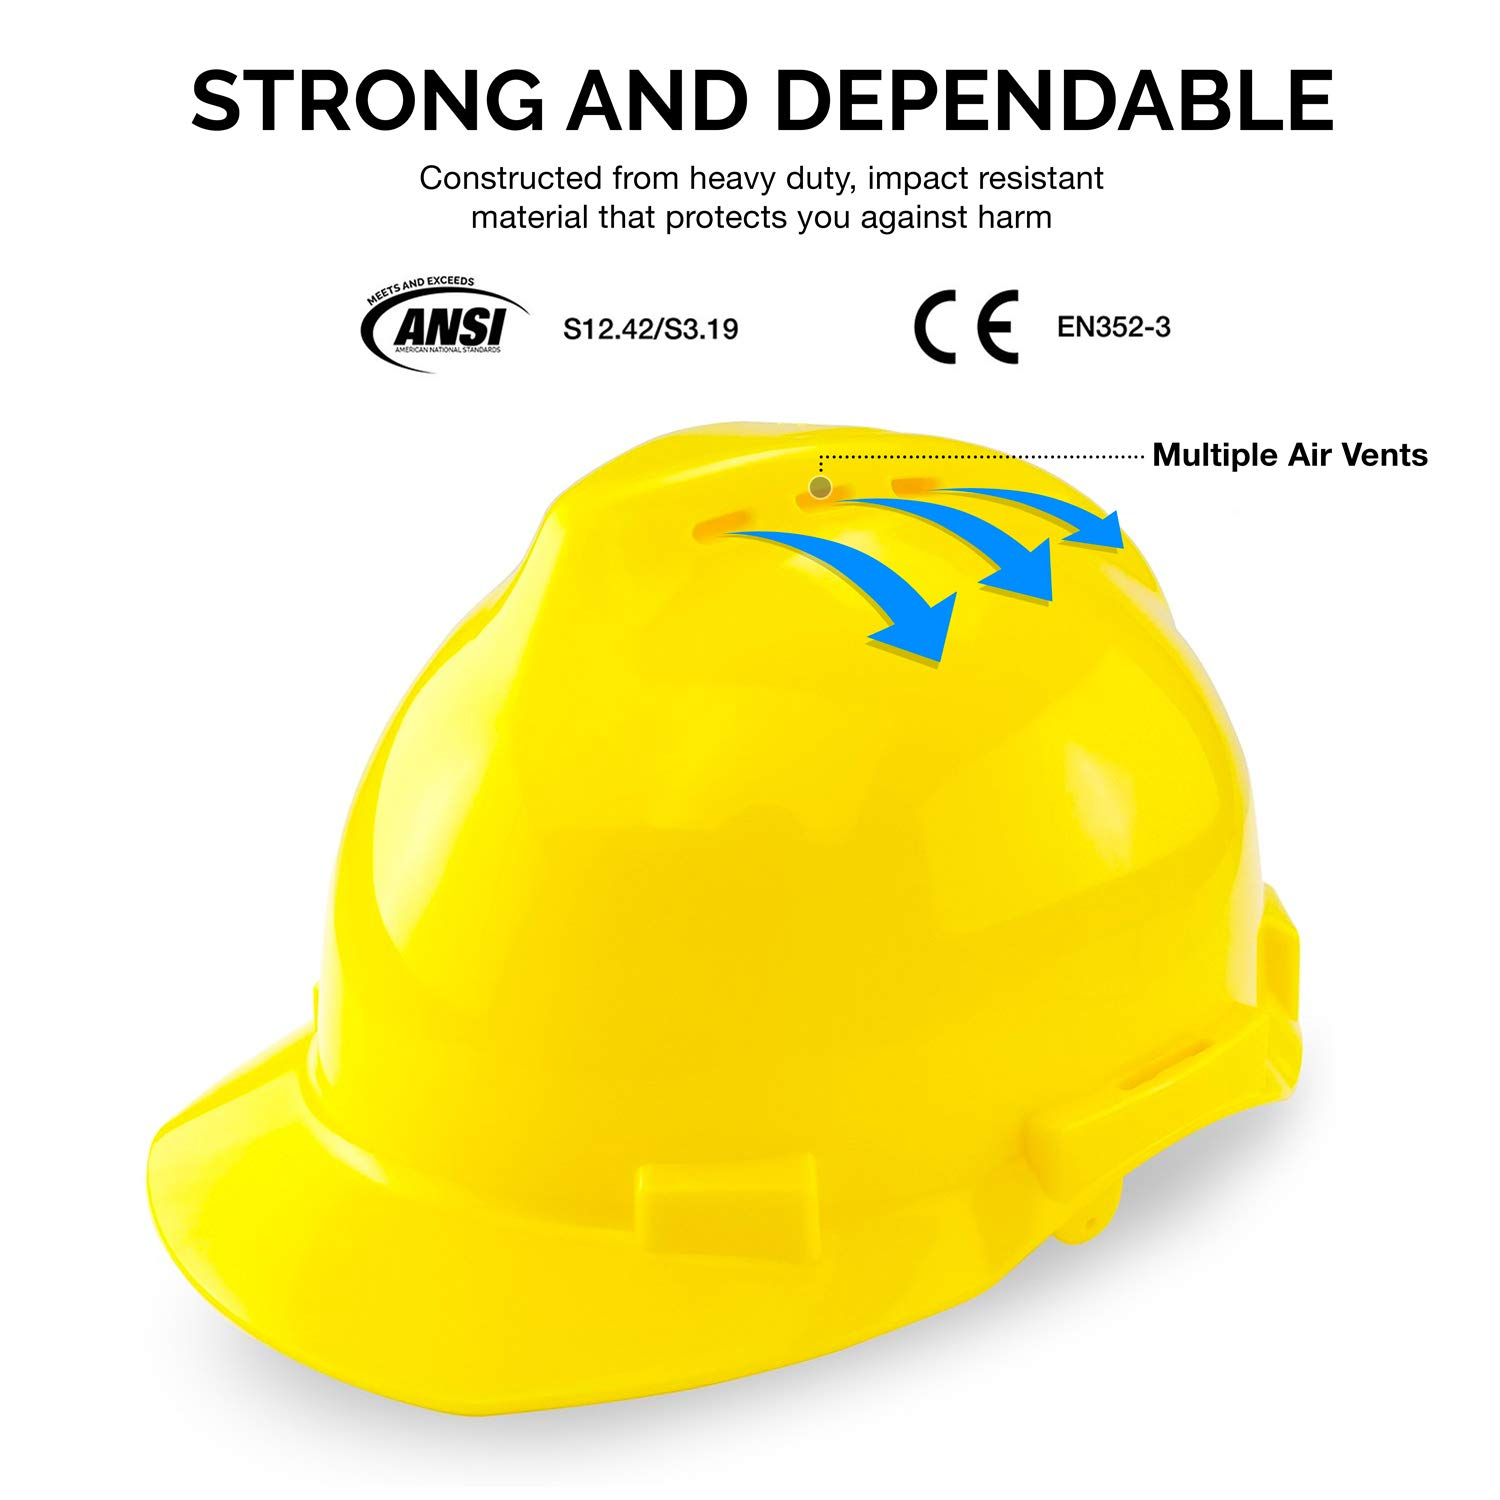 Neiko 53880A 4-in-1 Safety Helmet with Hearing and Face Protection, Heavy Duty Hard Hat | Removable Ear Muffs and Visors by Neiko (Image #2)